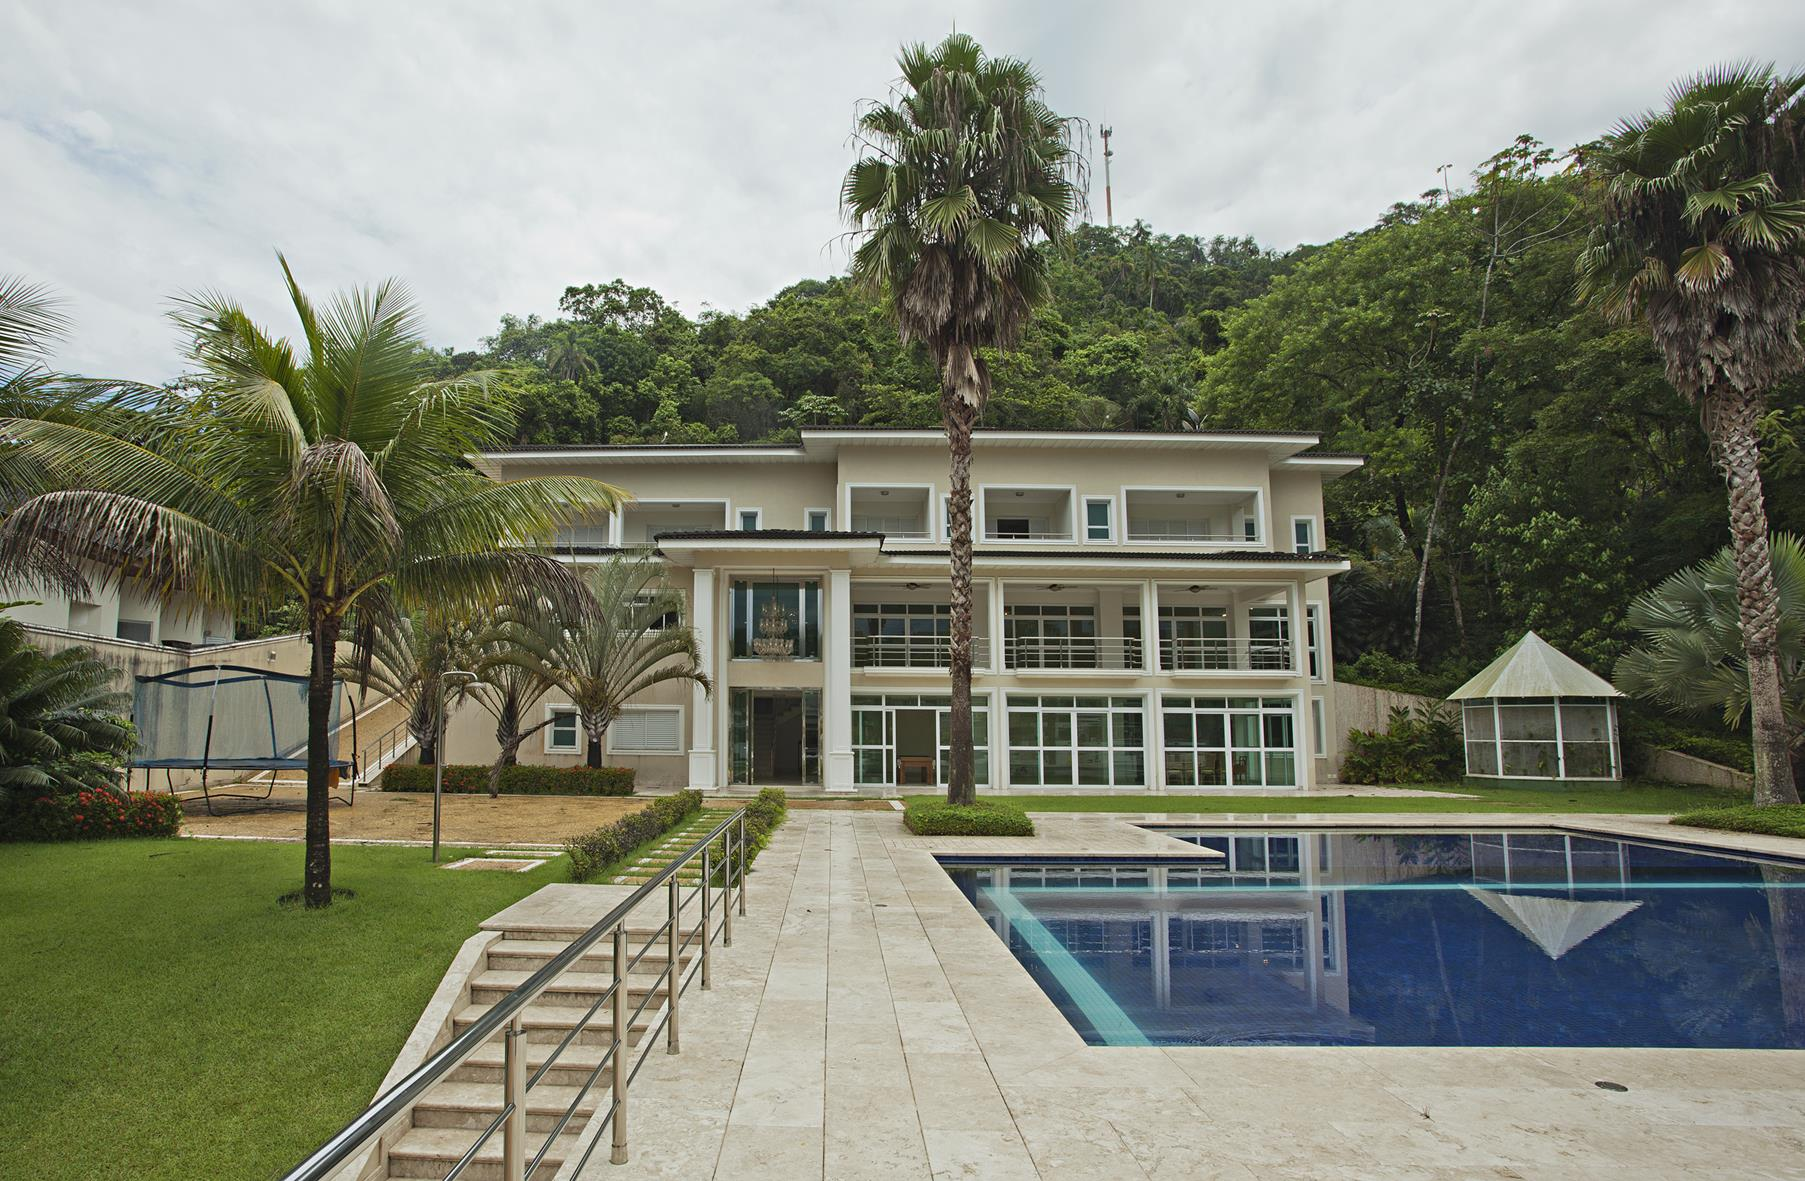 Tek Ailelik Ev için Satış at Luxurious House at Marina Guarujá Estrada Guarujá/Bertioga Guaruja, Sao Paulo, 11443-485 Brezilya